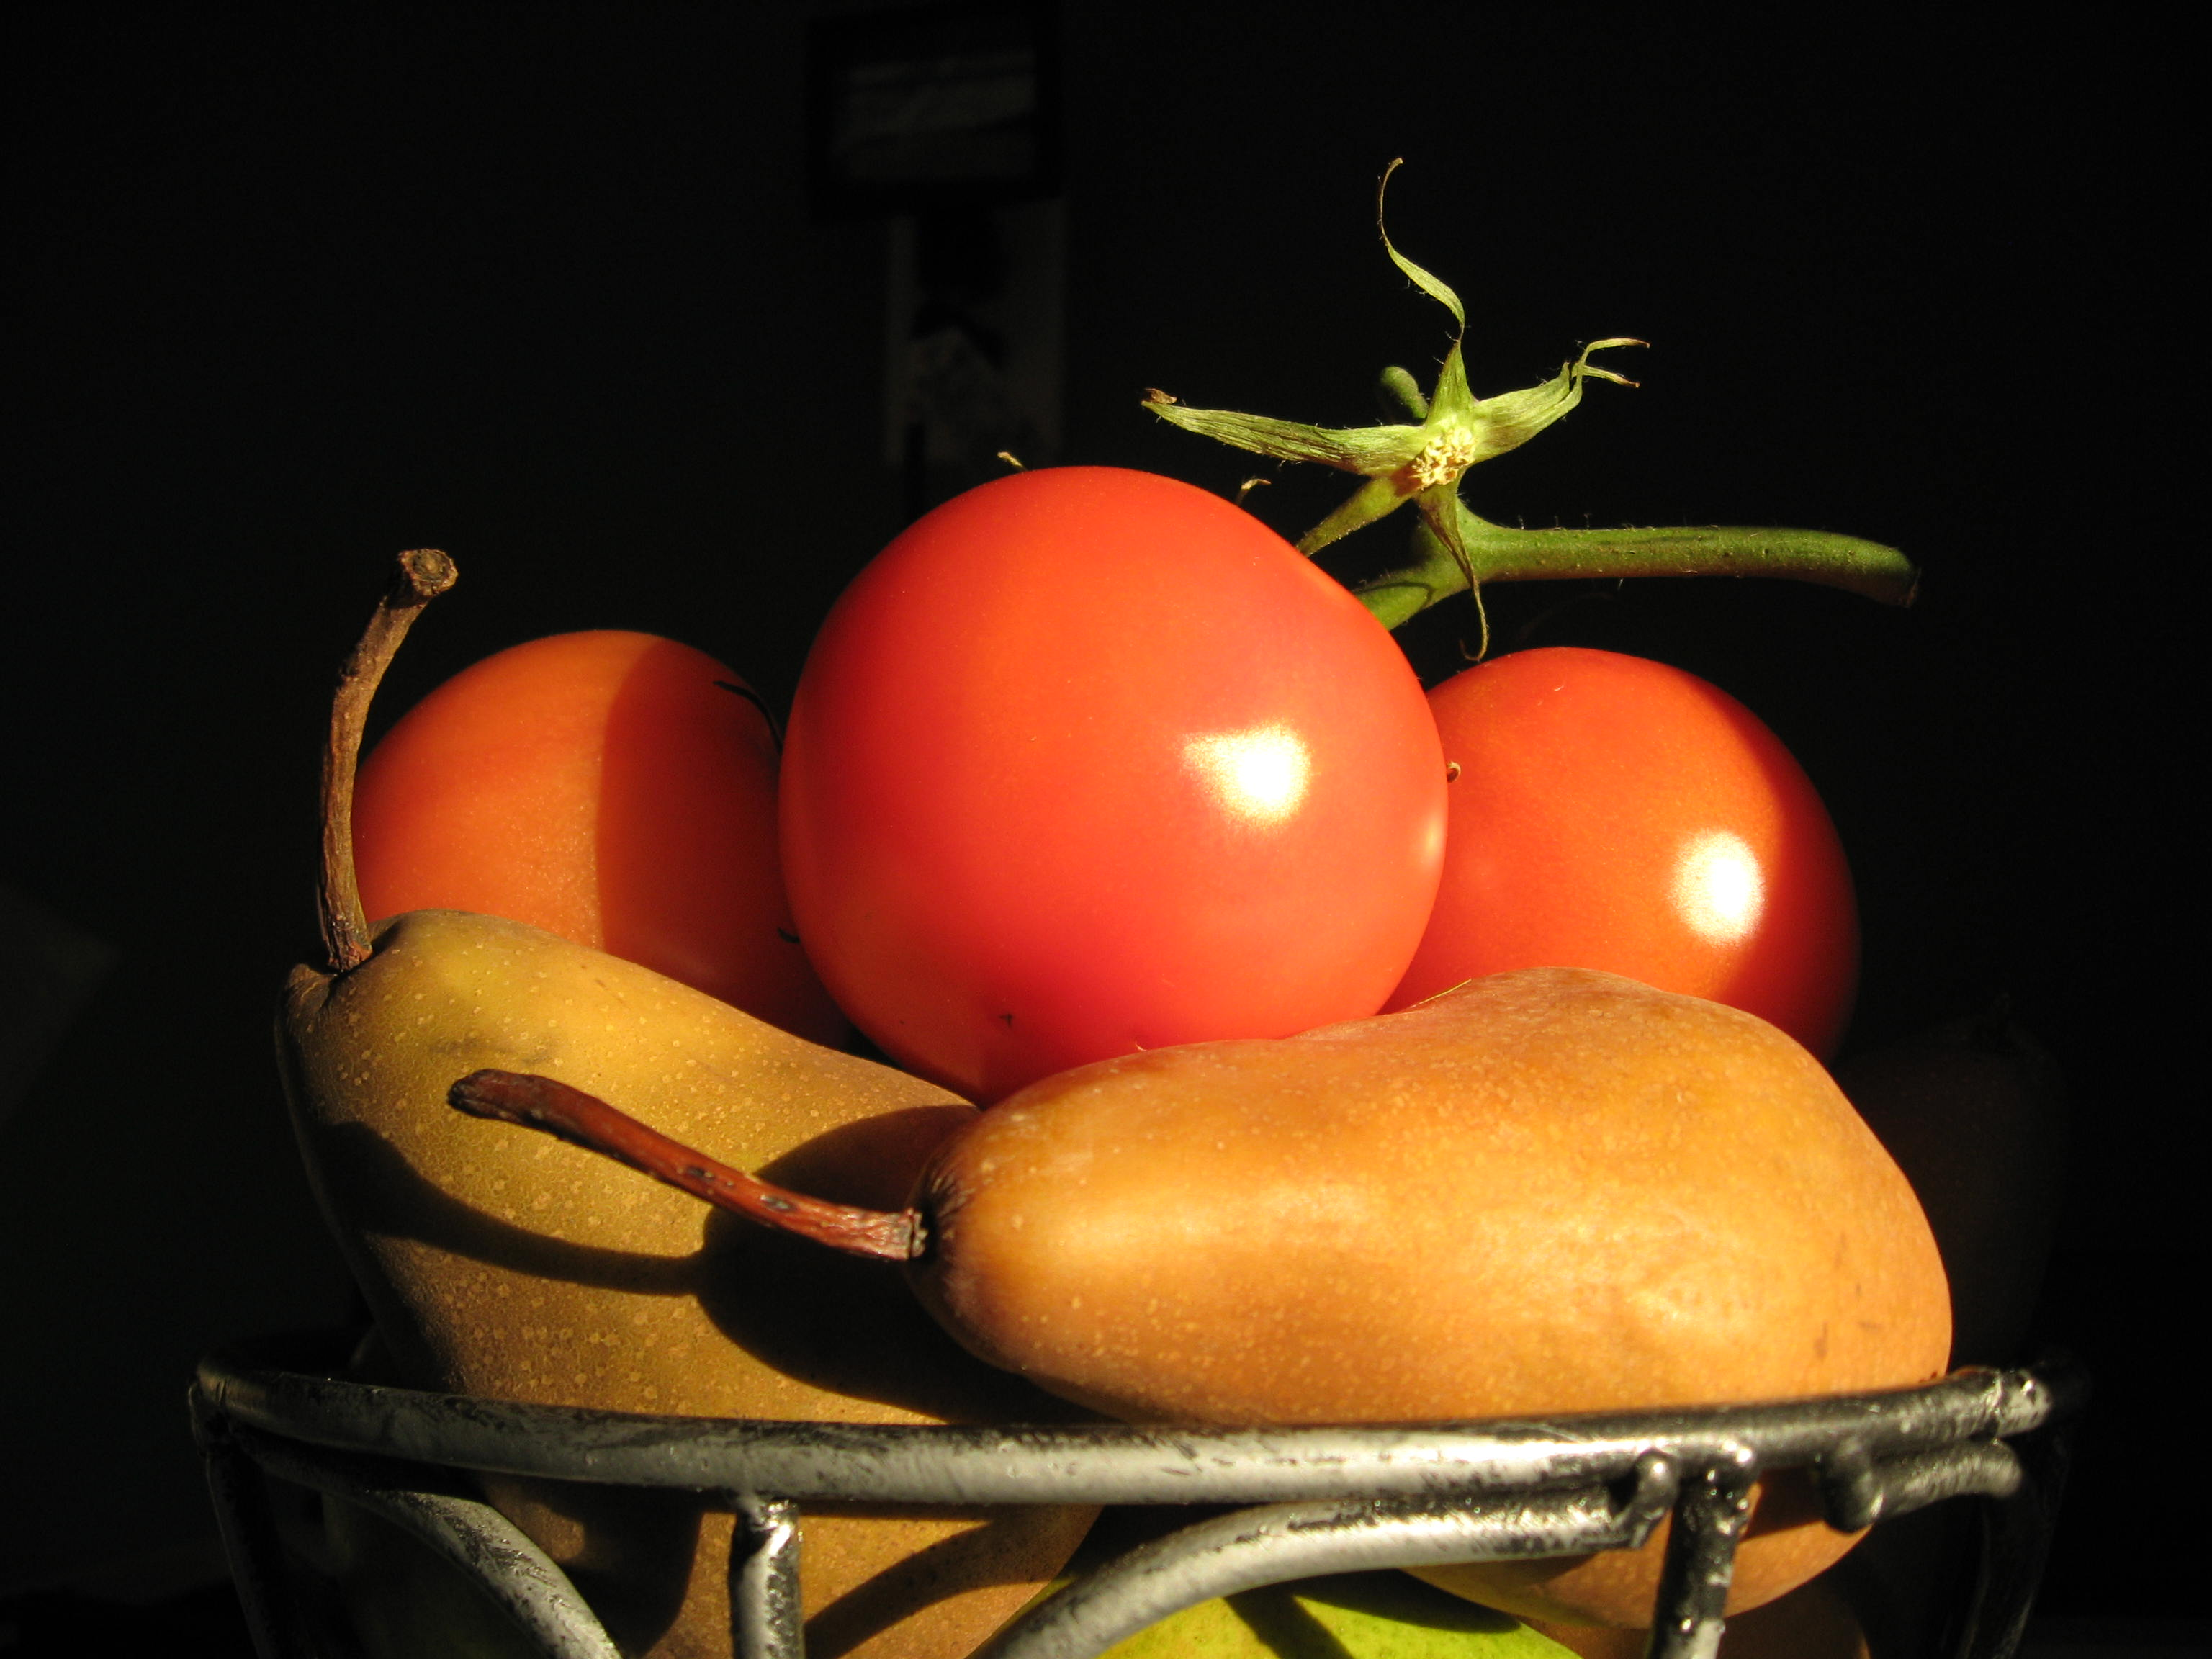 Tomatoes and pears: early morning still life.